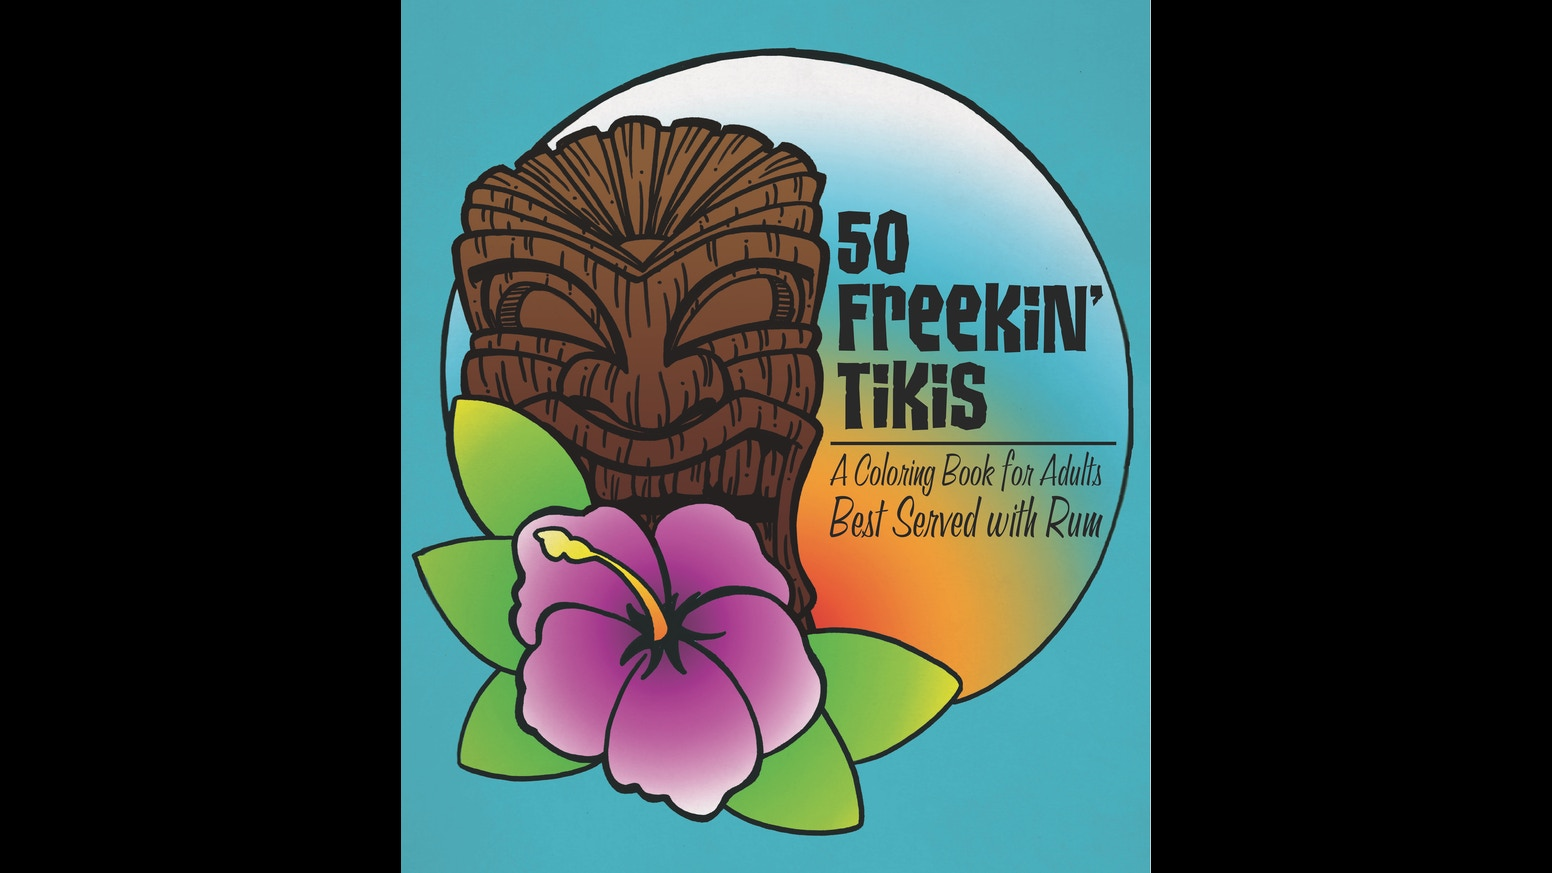 The coloring book vinyl